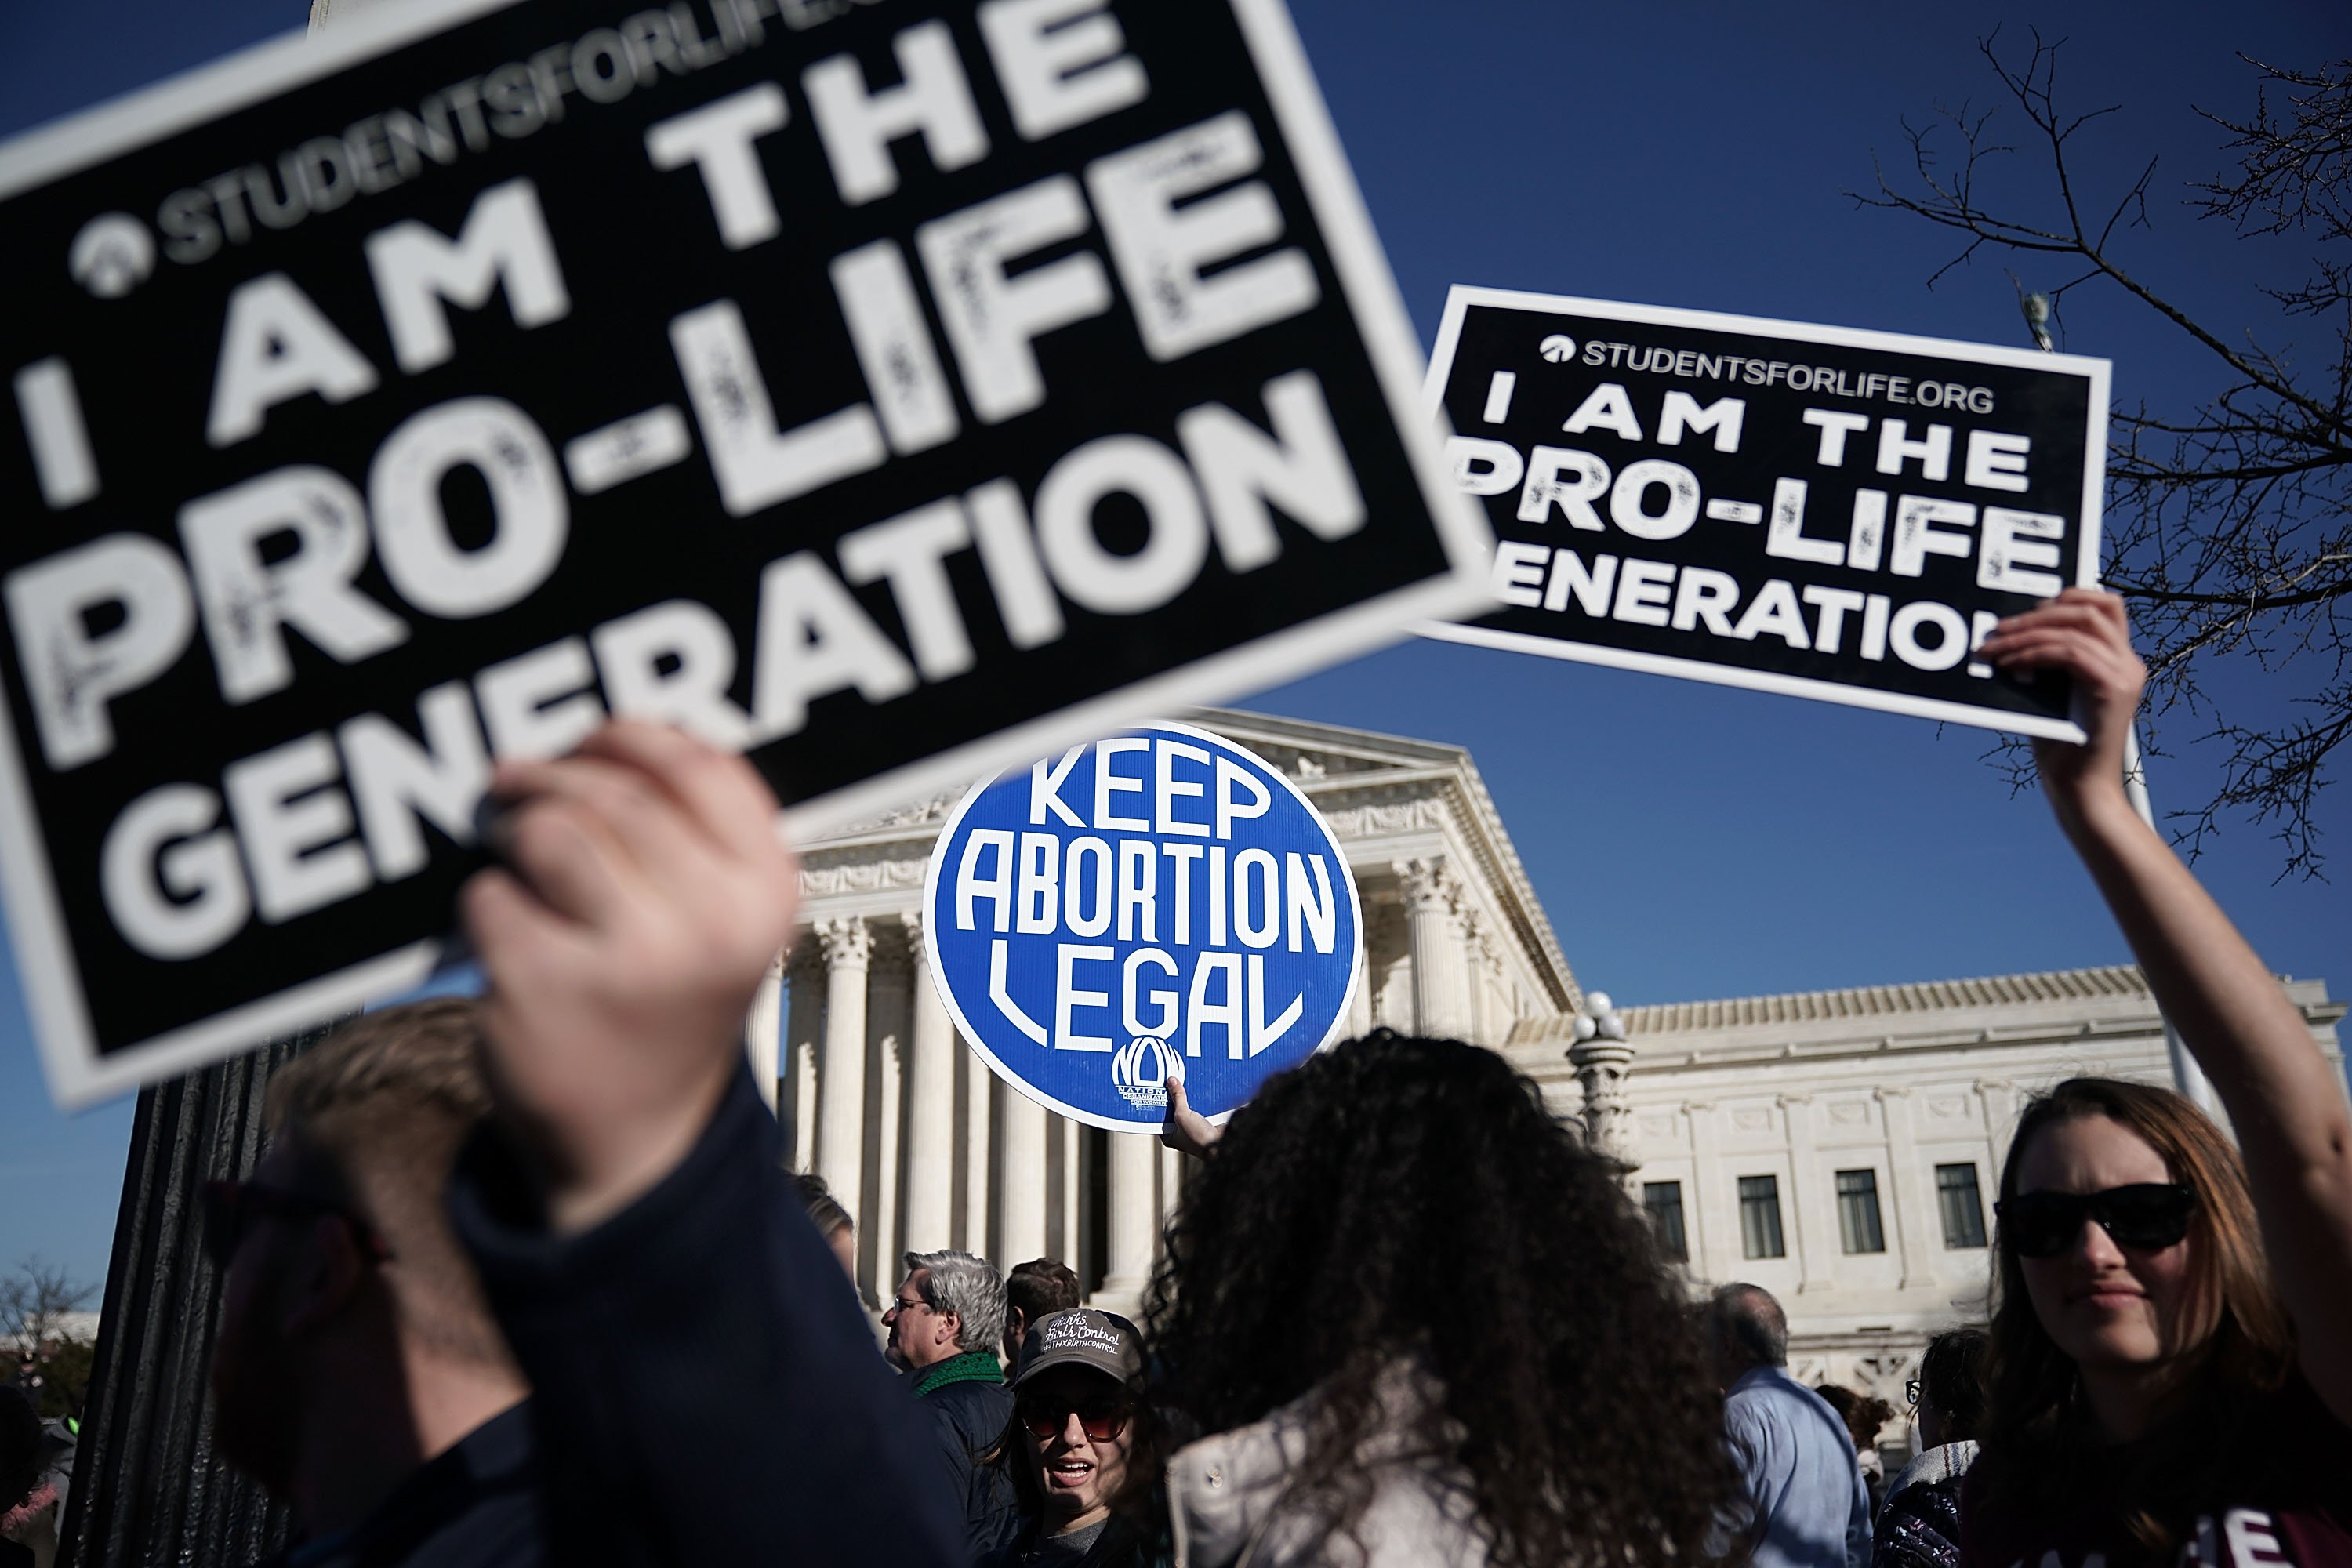 WASHINGTON, DC - JANUARY 19: Pro-life activists try to block the sign of a pro-choice activist during the 2018 March for Life January 19, 2018 in Washington, DC. Activists gathered in the nation's capital for the annual event to protest the anniversary of the Supreme Court Roe v. Wade ruling that legalized abortion in 1973. (Photo by Alex Wong/Getty Images)